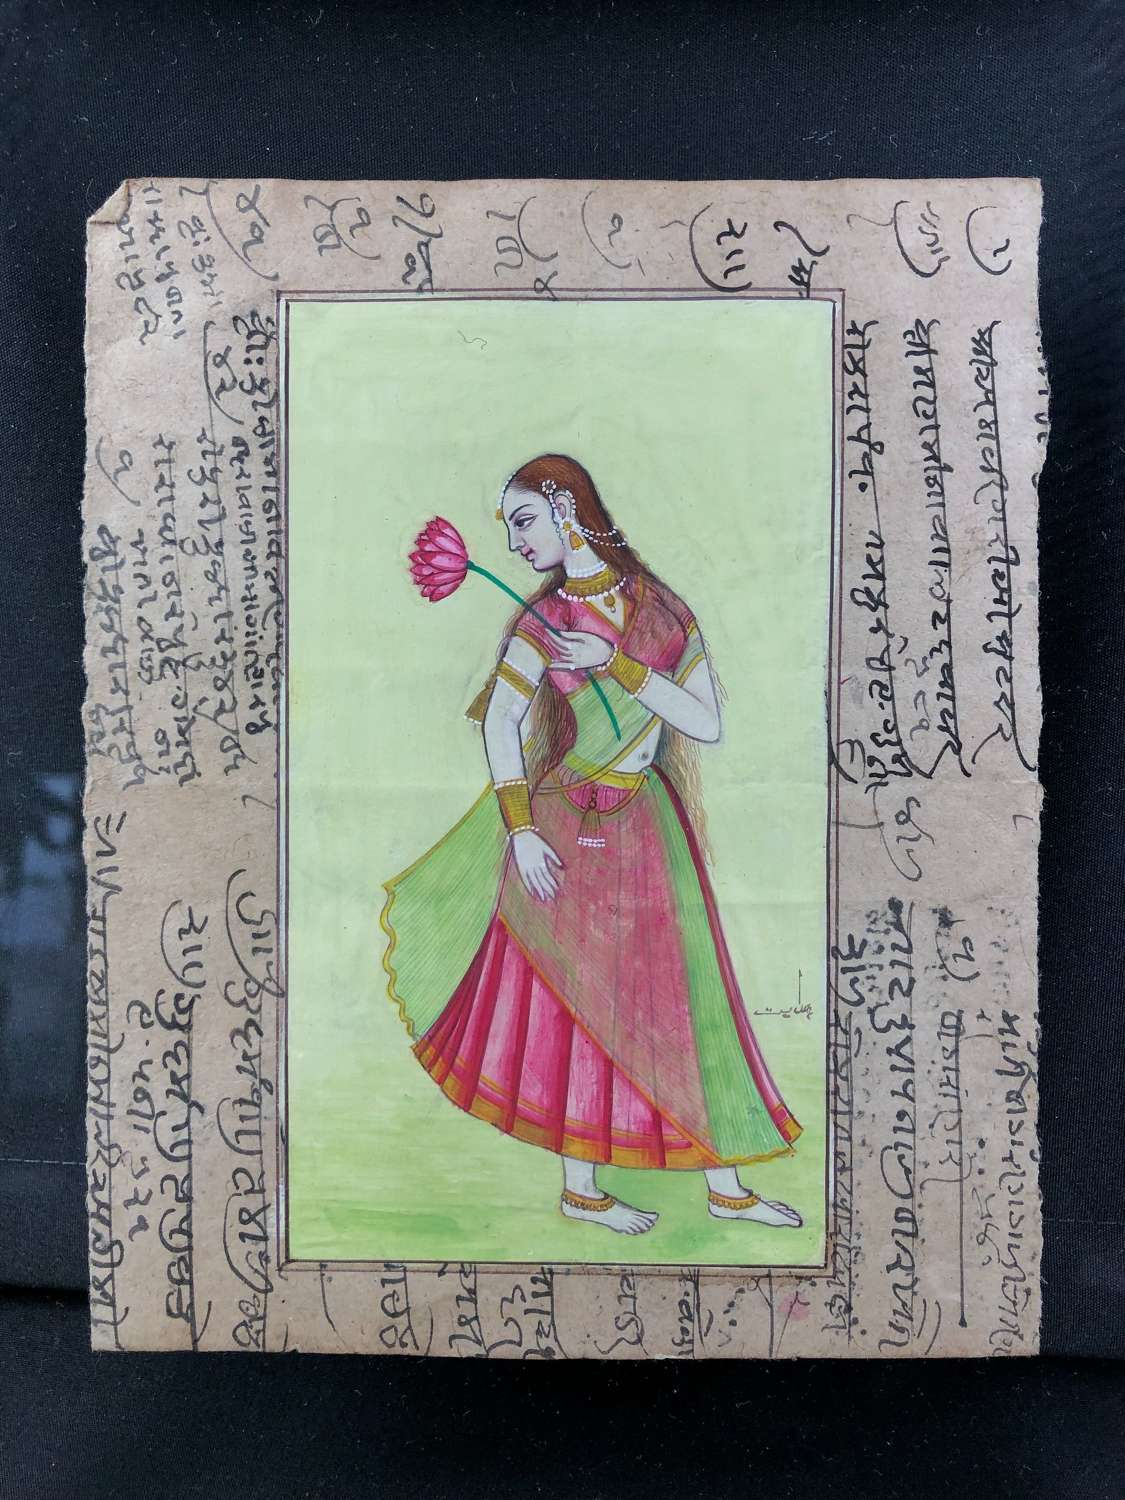 Mughal Hand Painted Watercolours or exquisite craftmanship.